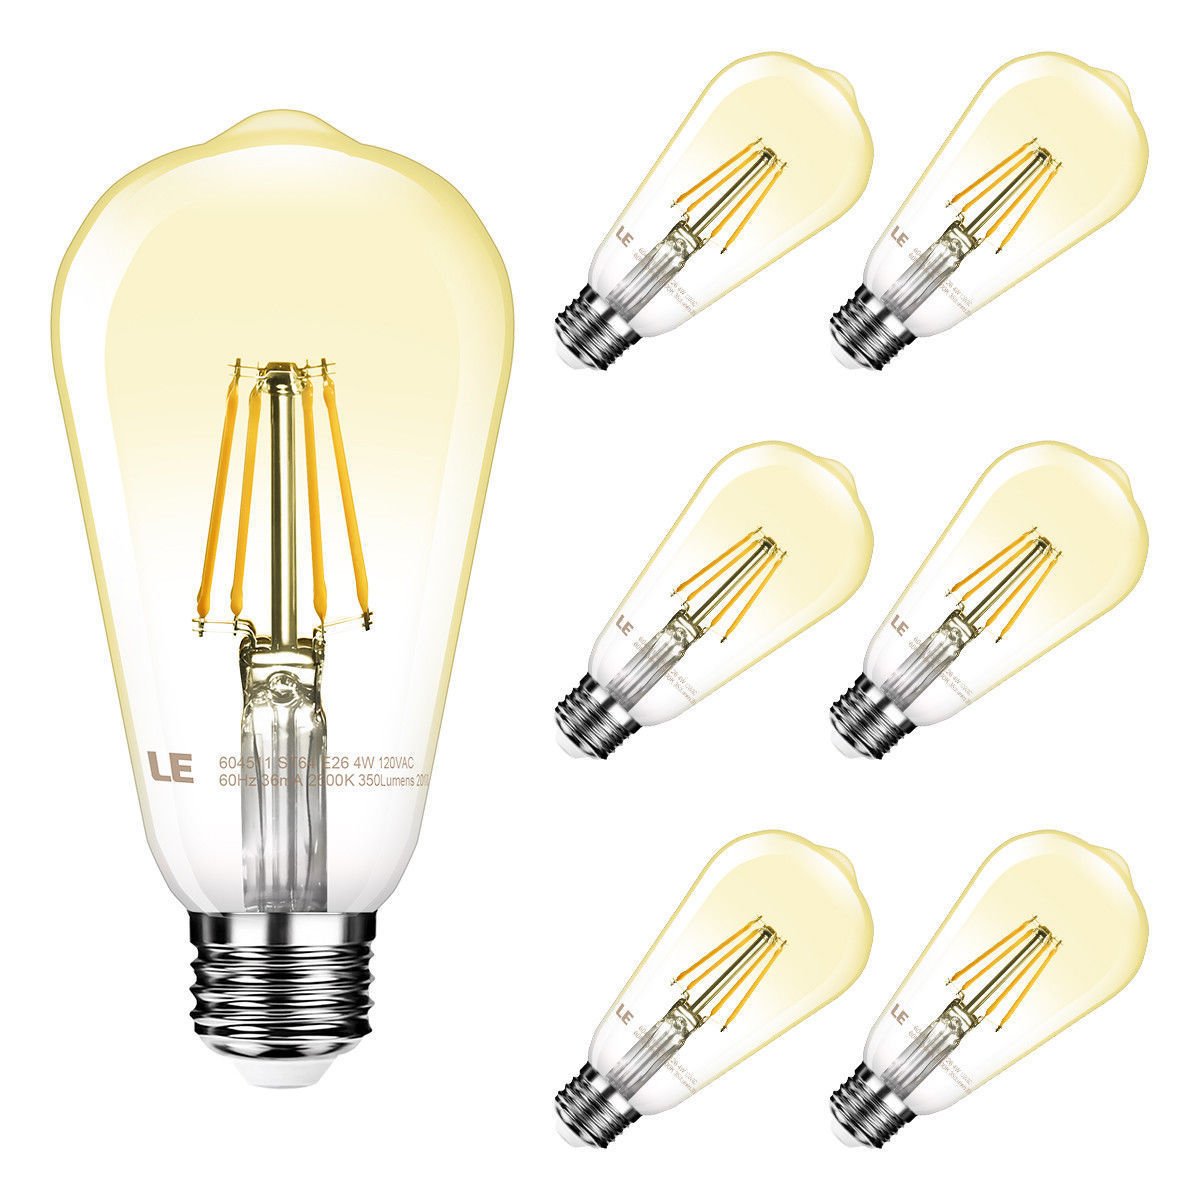 Lighting EVER 6 x ST64 LED Filament Edison Bulb Dimmable Retro Globe Lamp Vintage Light 2500K